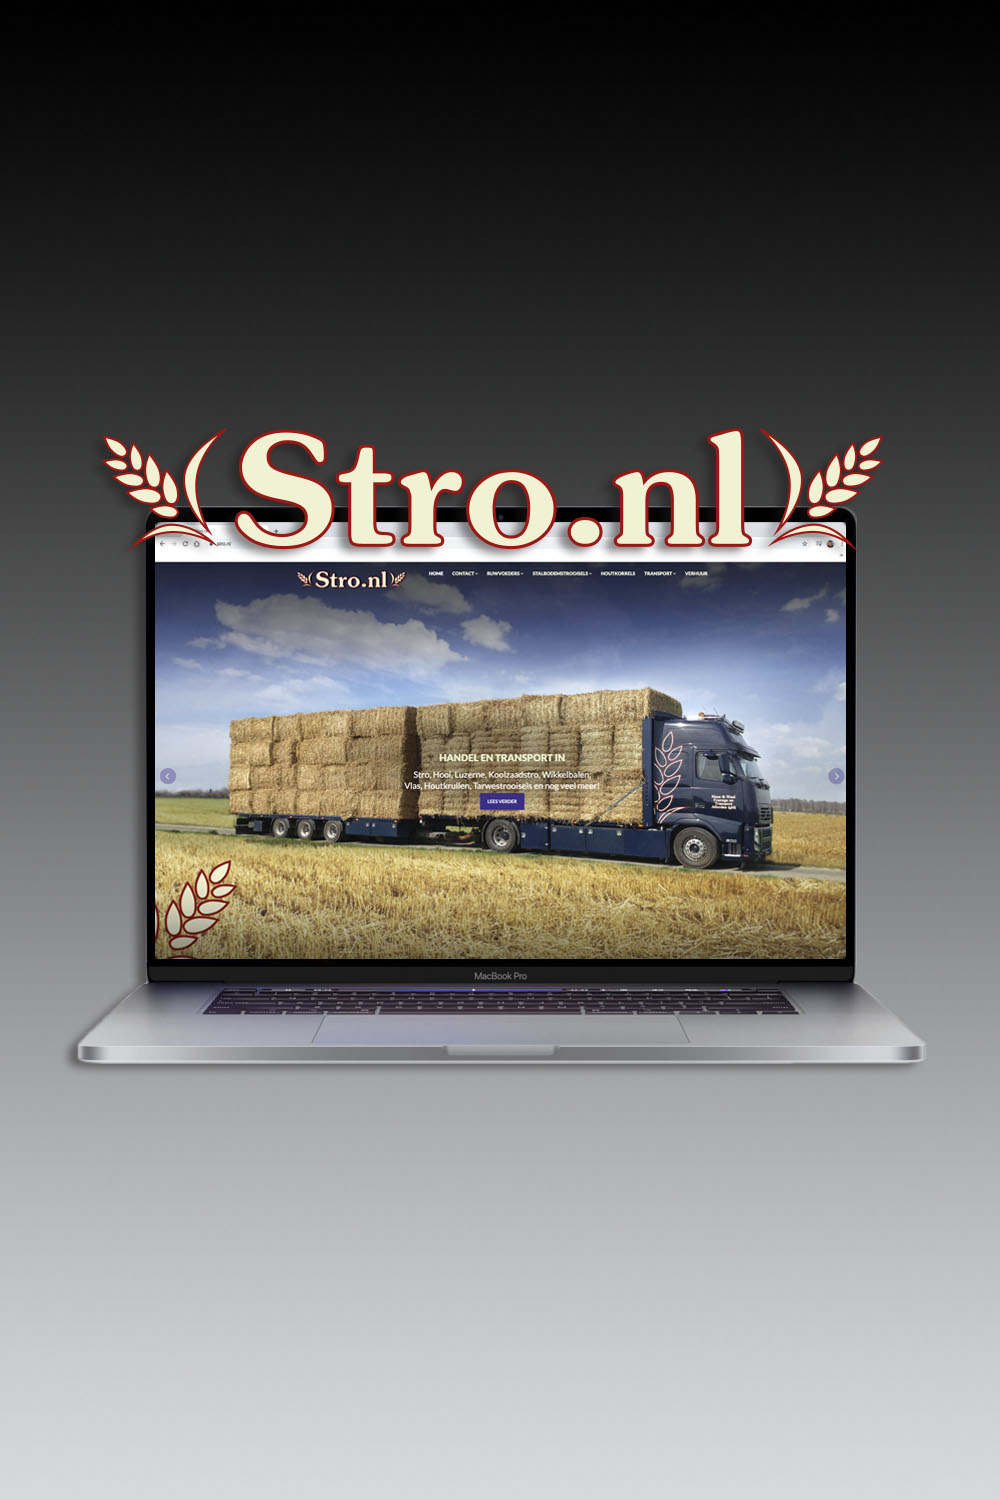 Stro.nl / Maas & Waal Fourage en Transport